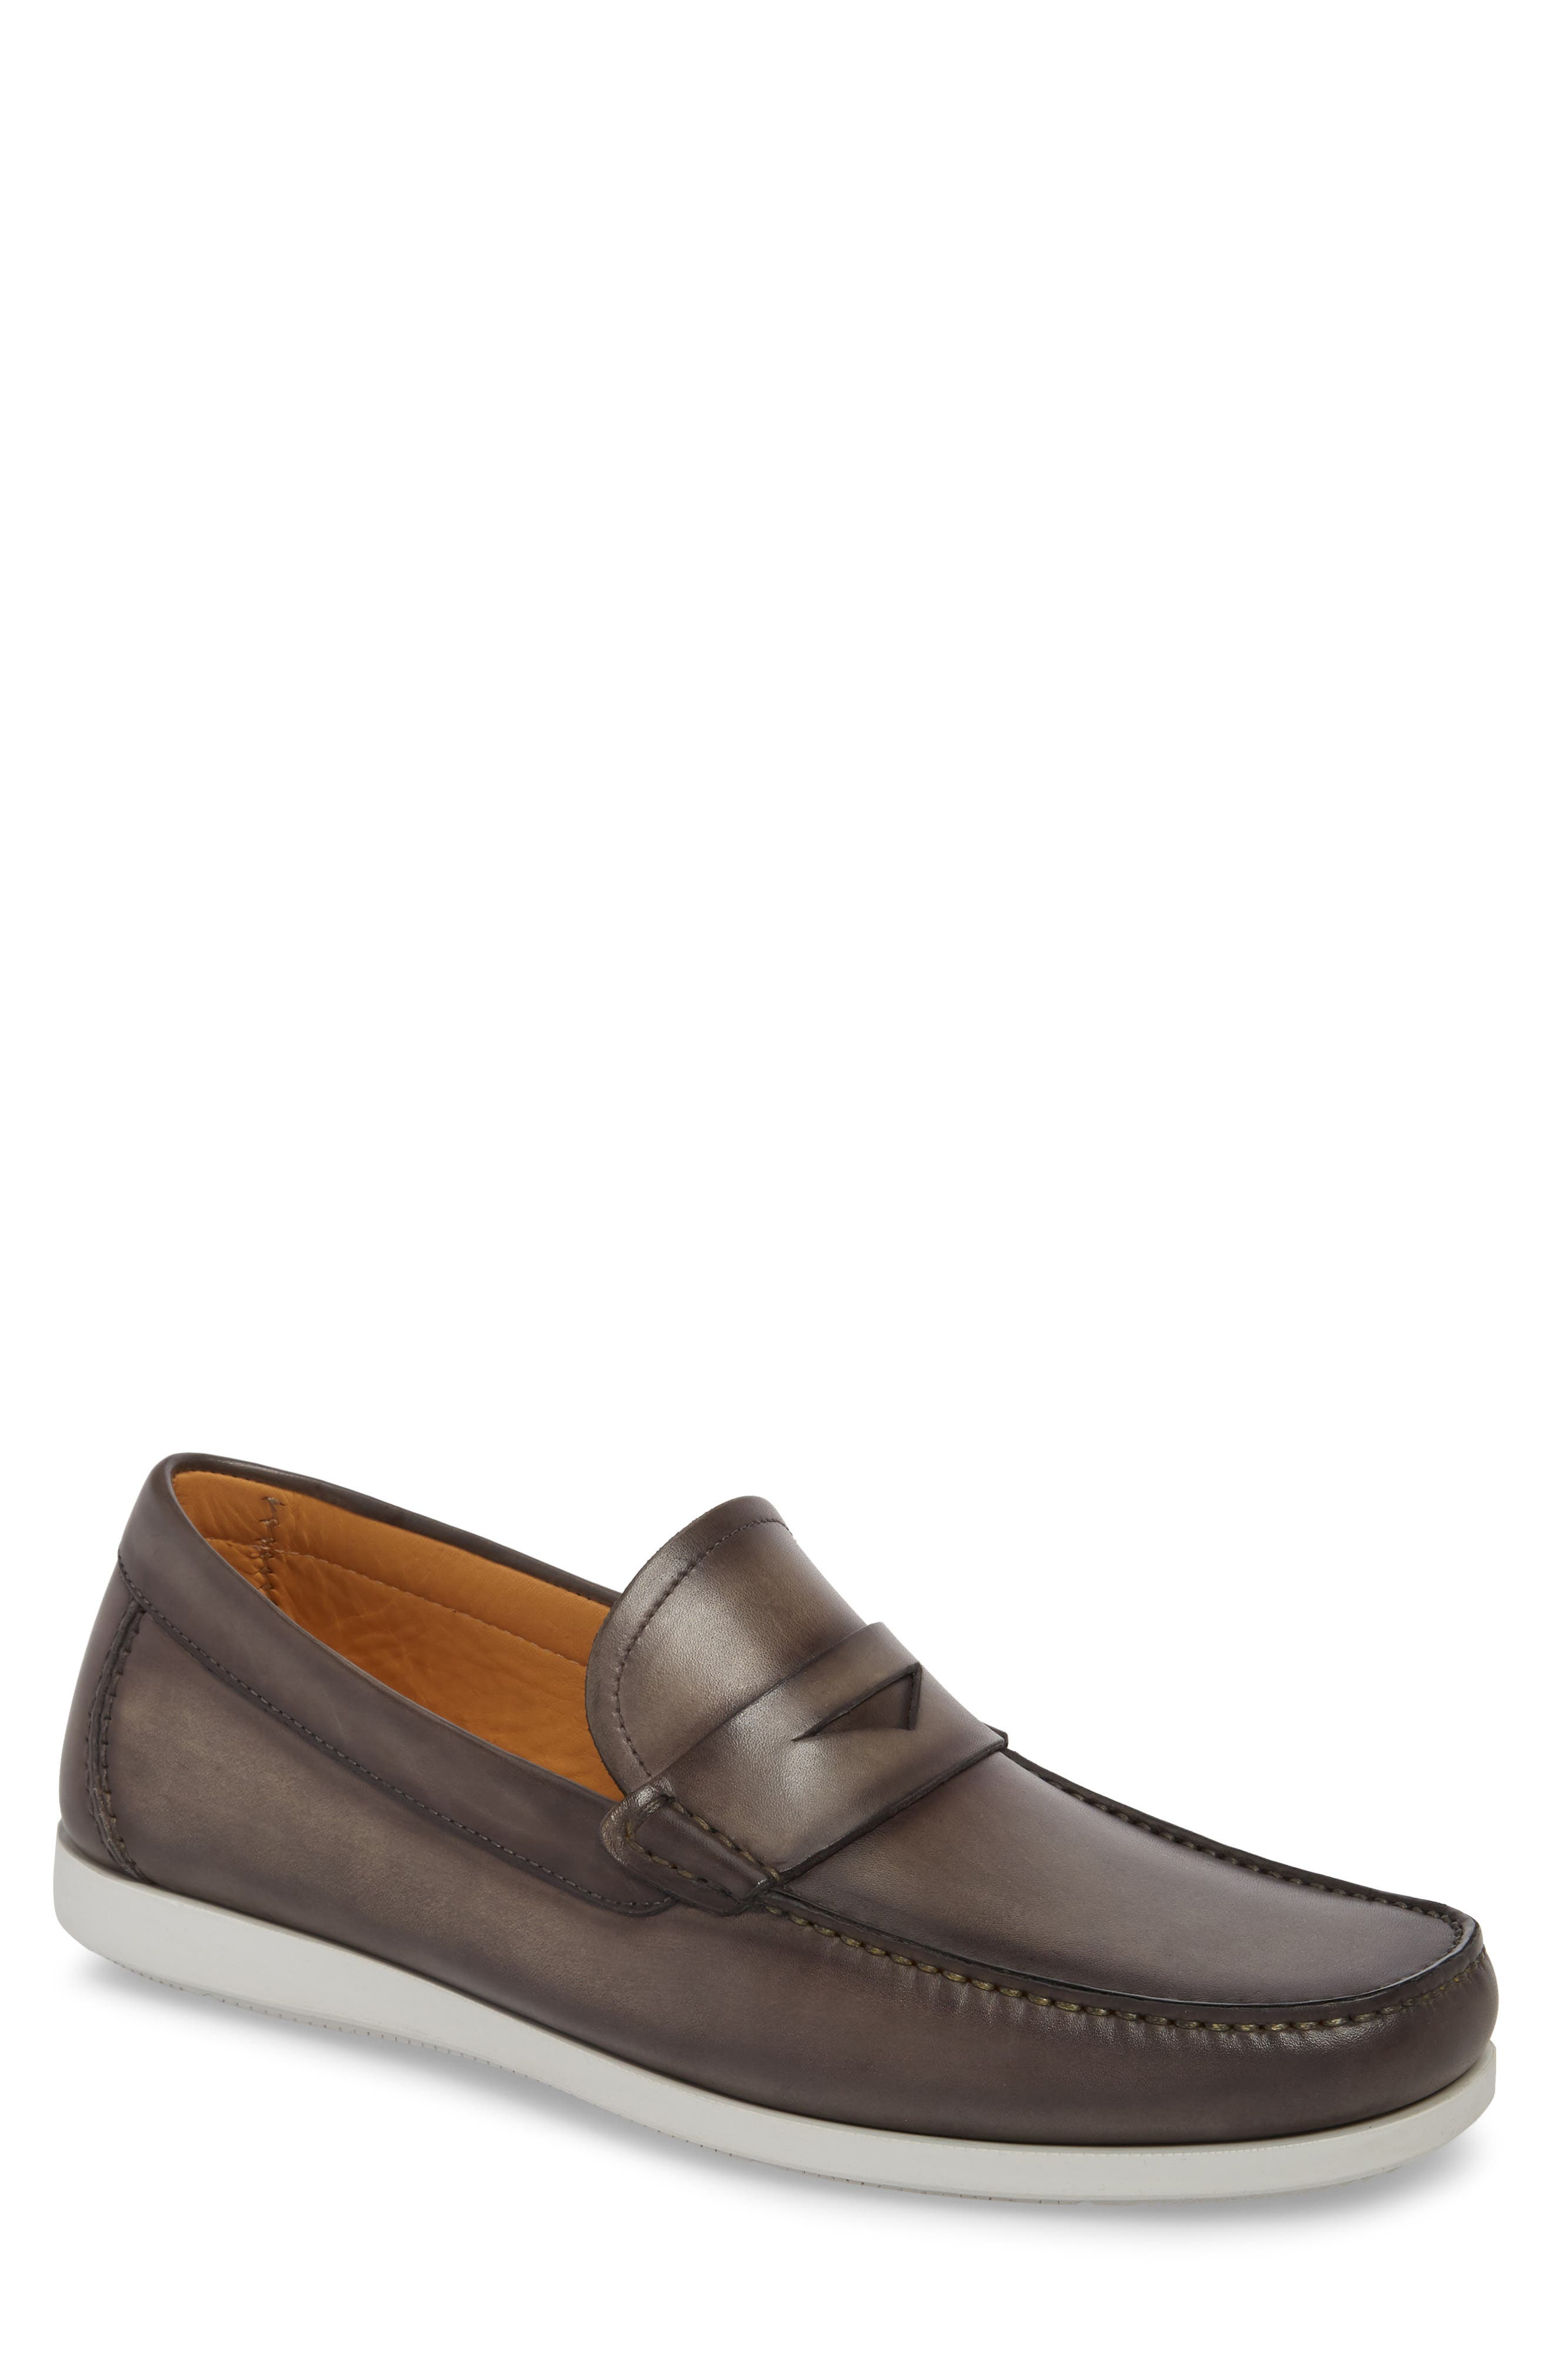 Laguna Penny Loafer,                             Main thumbnail 1, color,                             Grey Leather